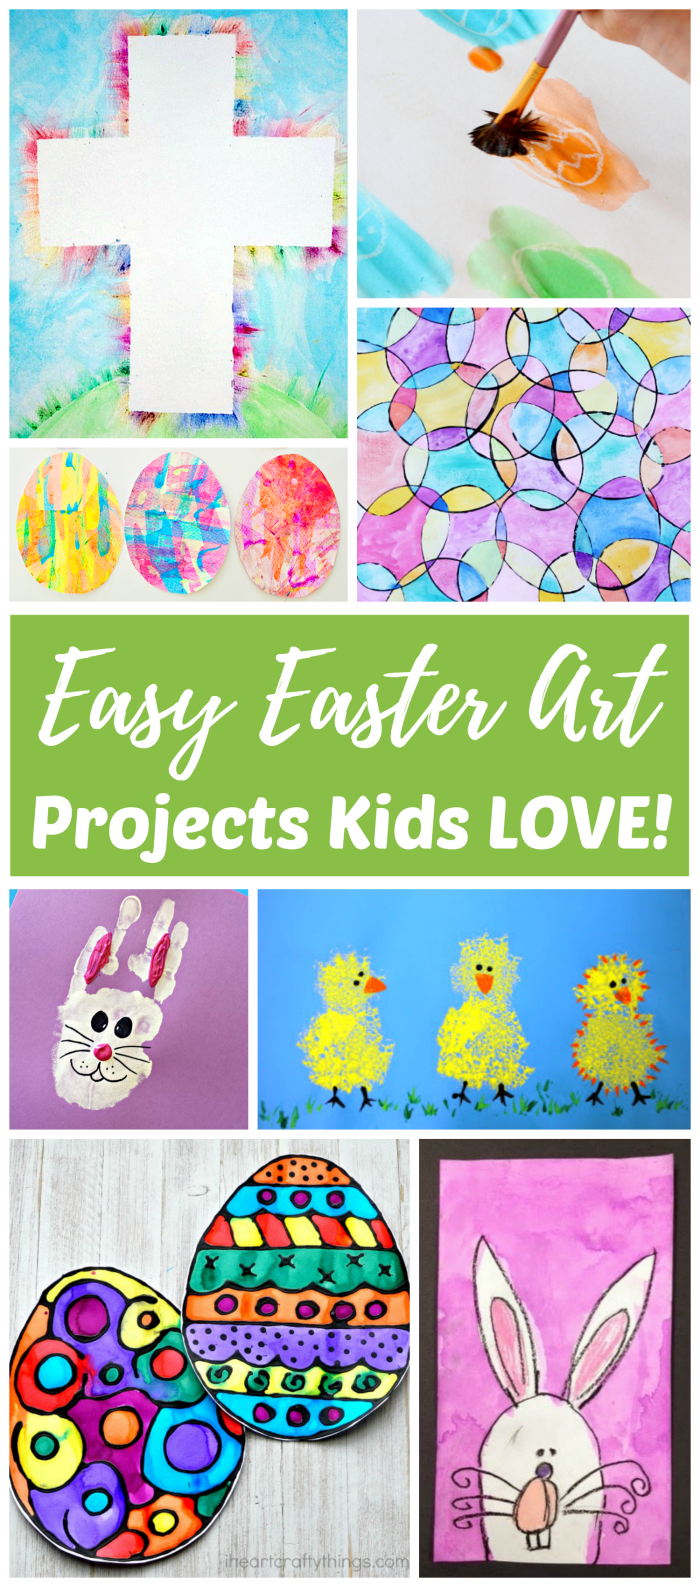 50+ Arts and crafts projects for kids ideas in 2021